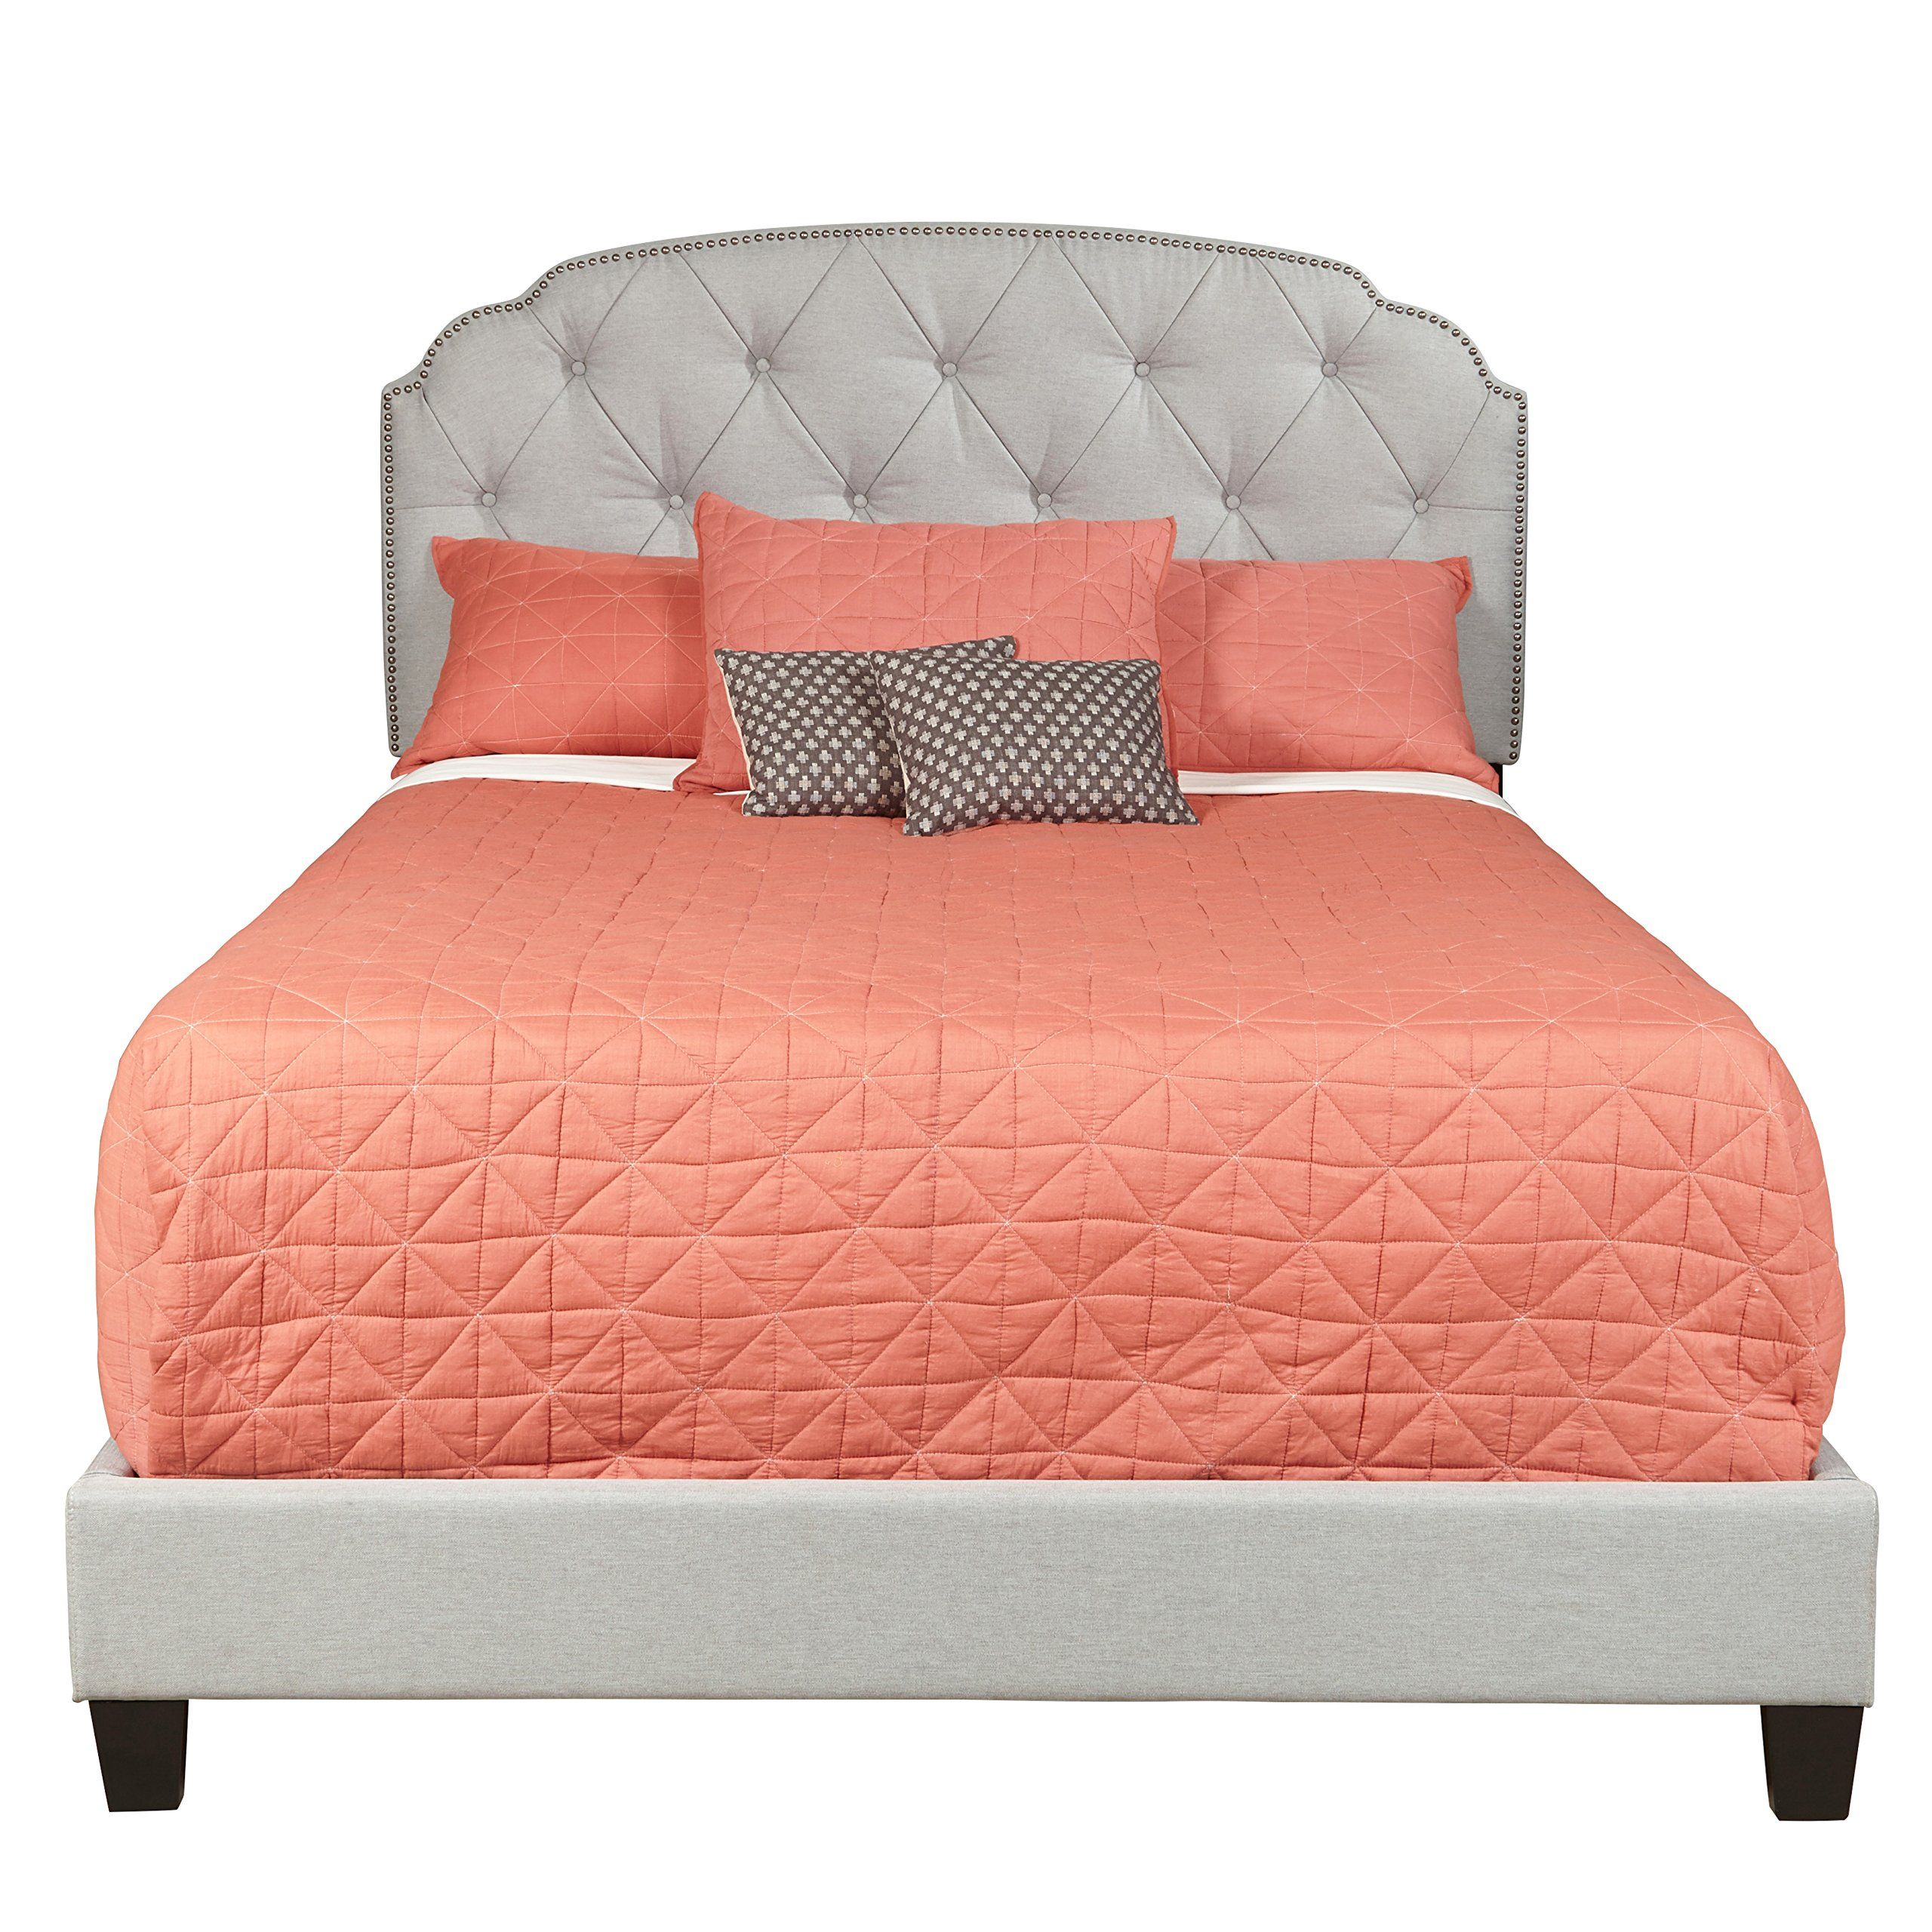 Amazon.com: Pulaski Channing Upholstered All-In-One Bed, Queen ...